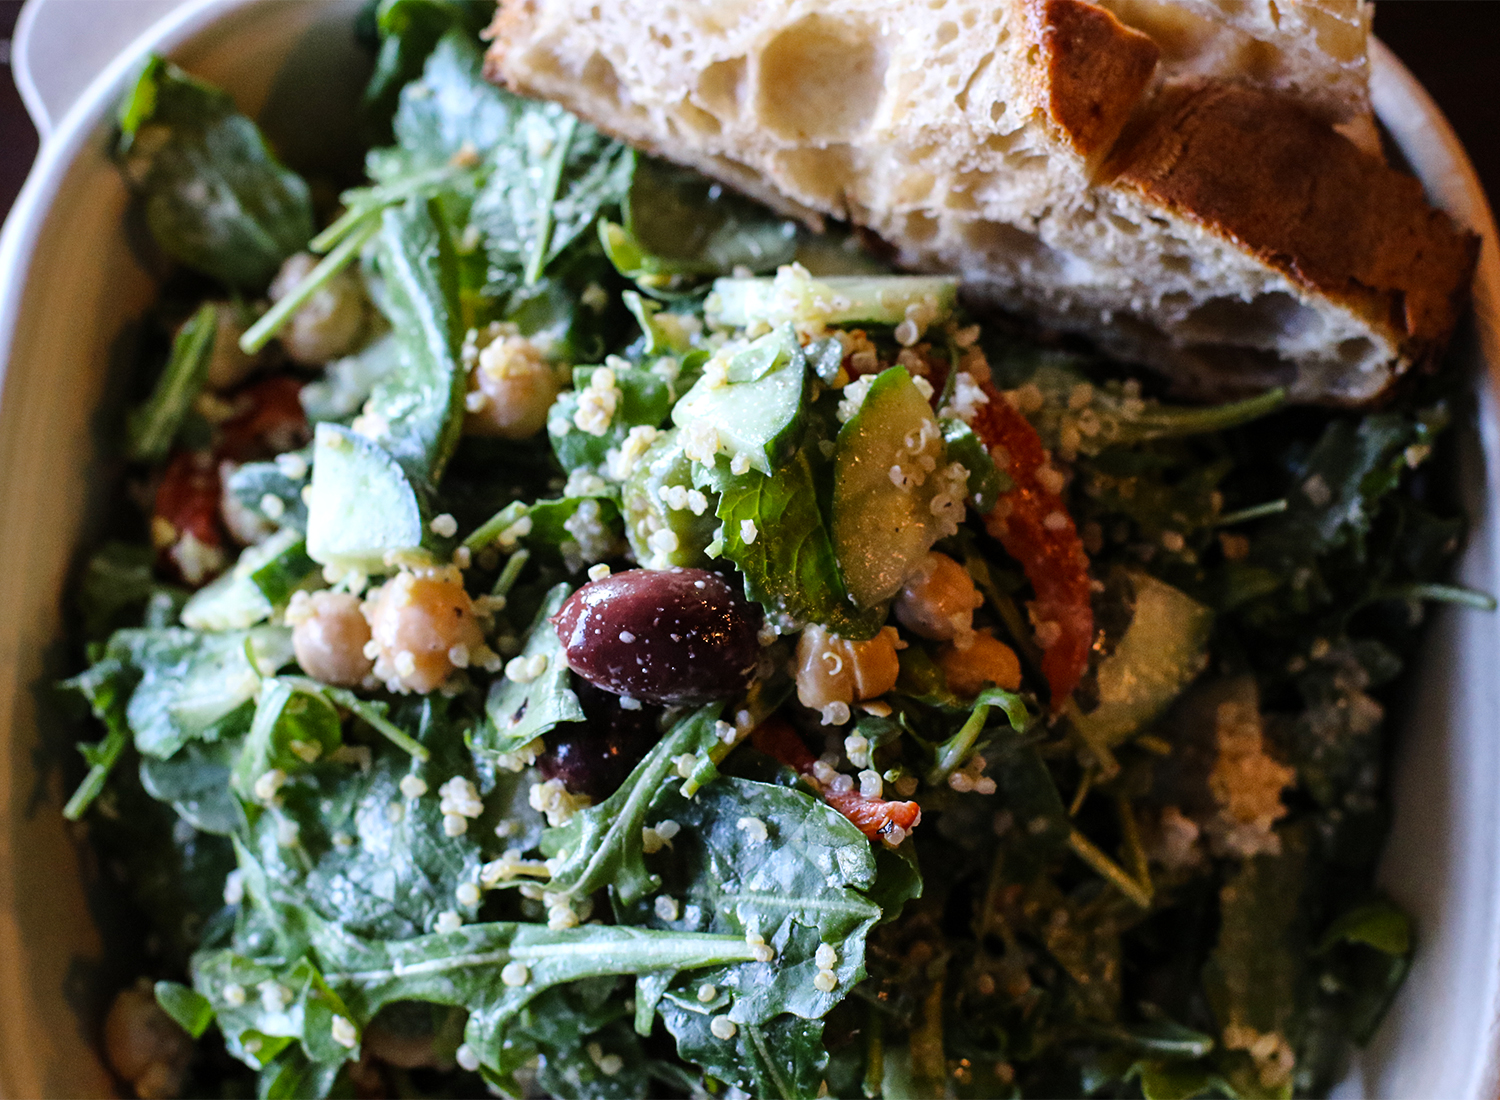 Hanna salad with quinoa, kale, arugula, olives, red peppers, chick peas and tahini dressing at Zoftig. Heather Irwin/PD